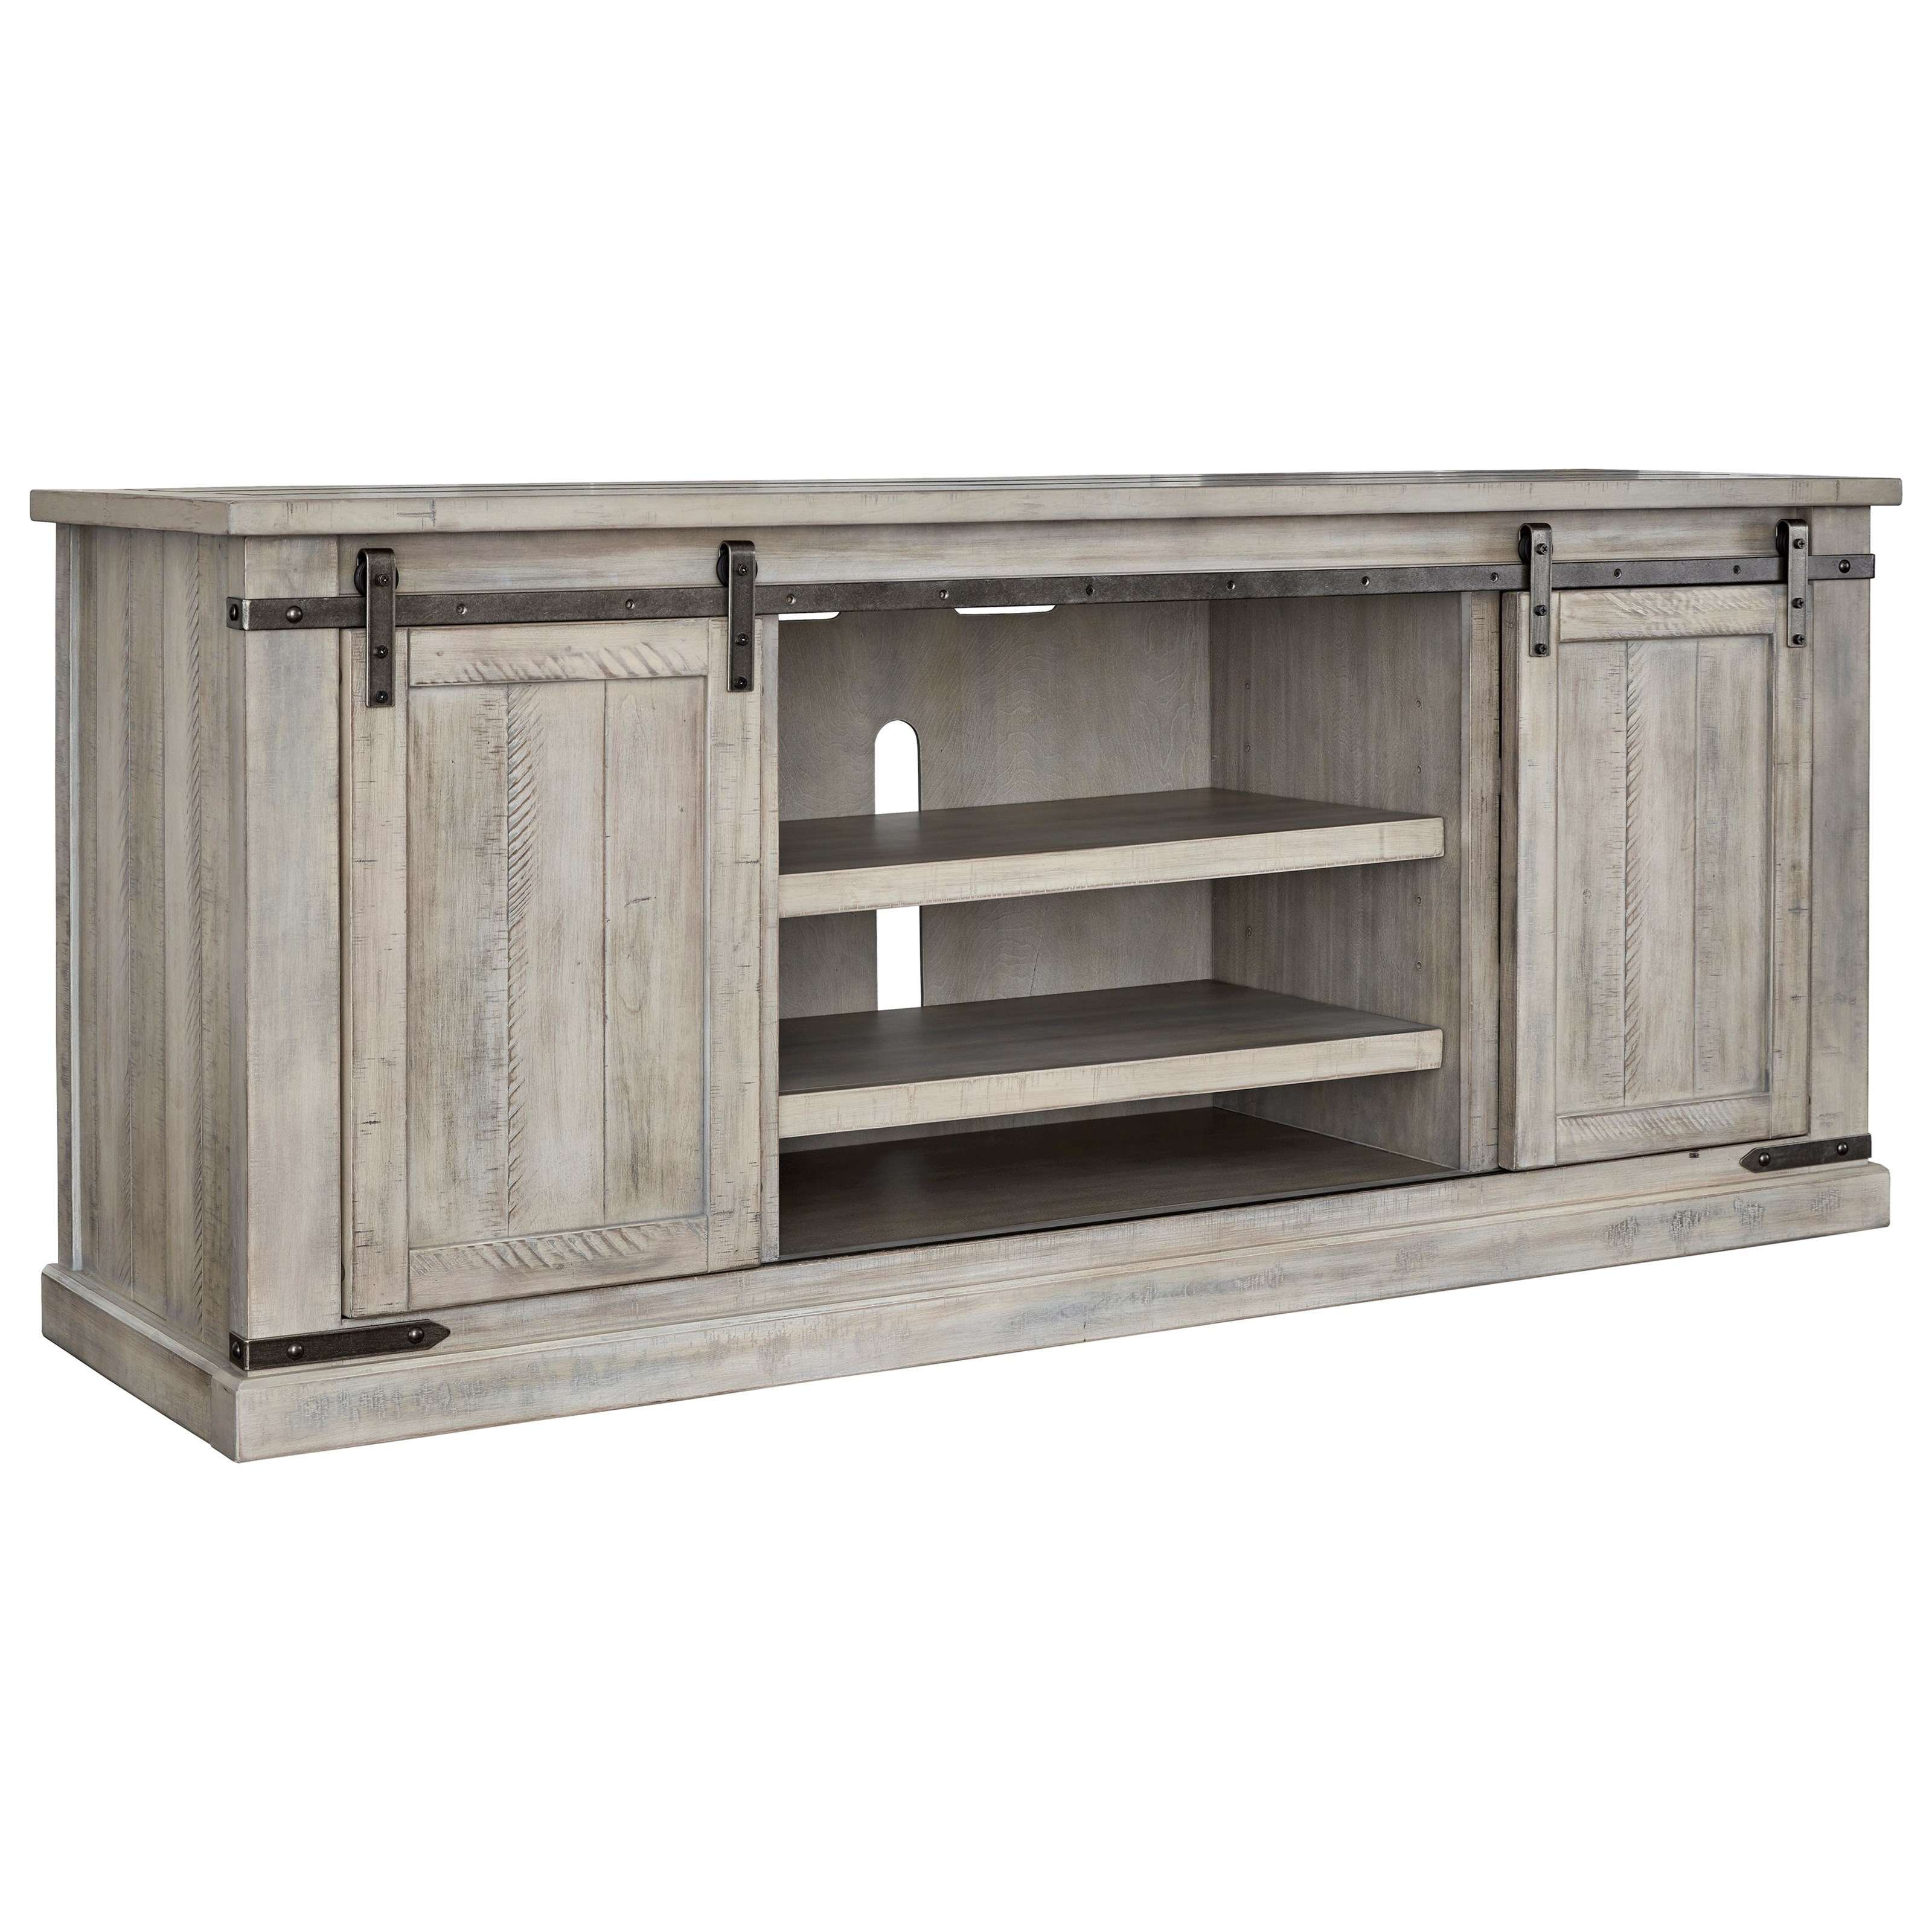 Carynhurst TV Stand by Signature Design by Ashley at HomeWorld Furniture